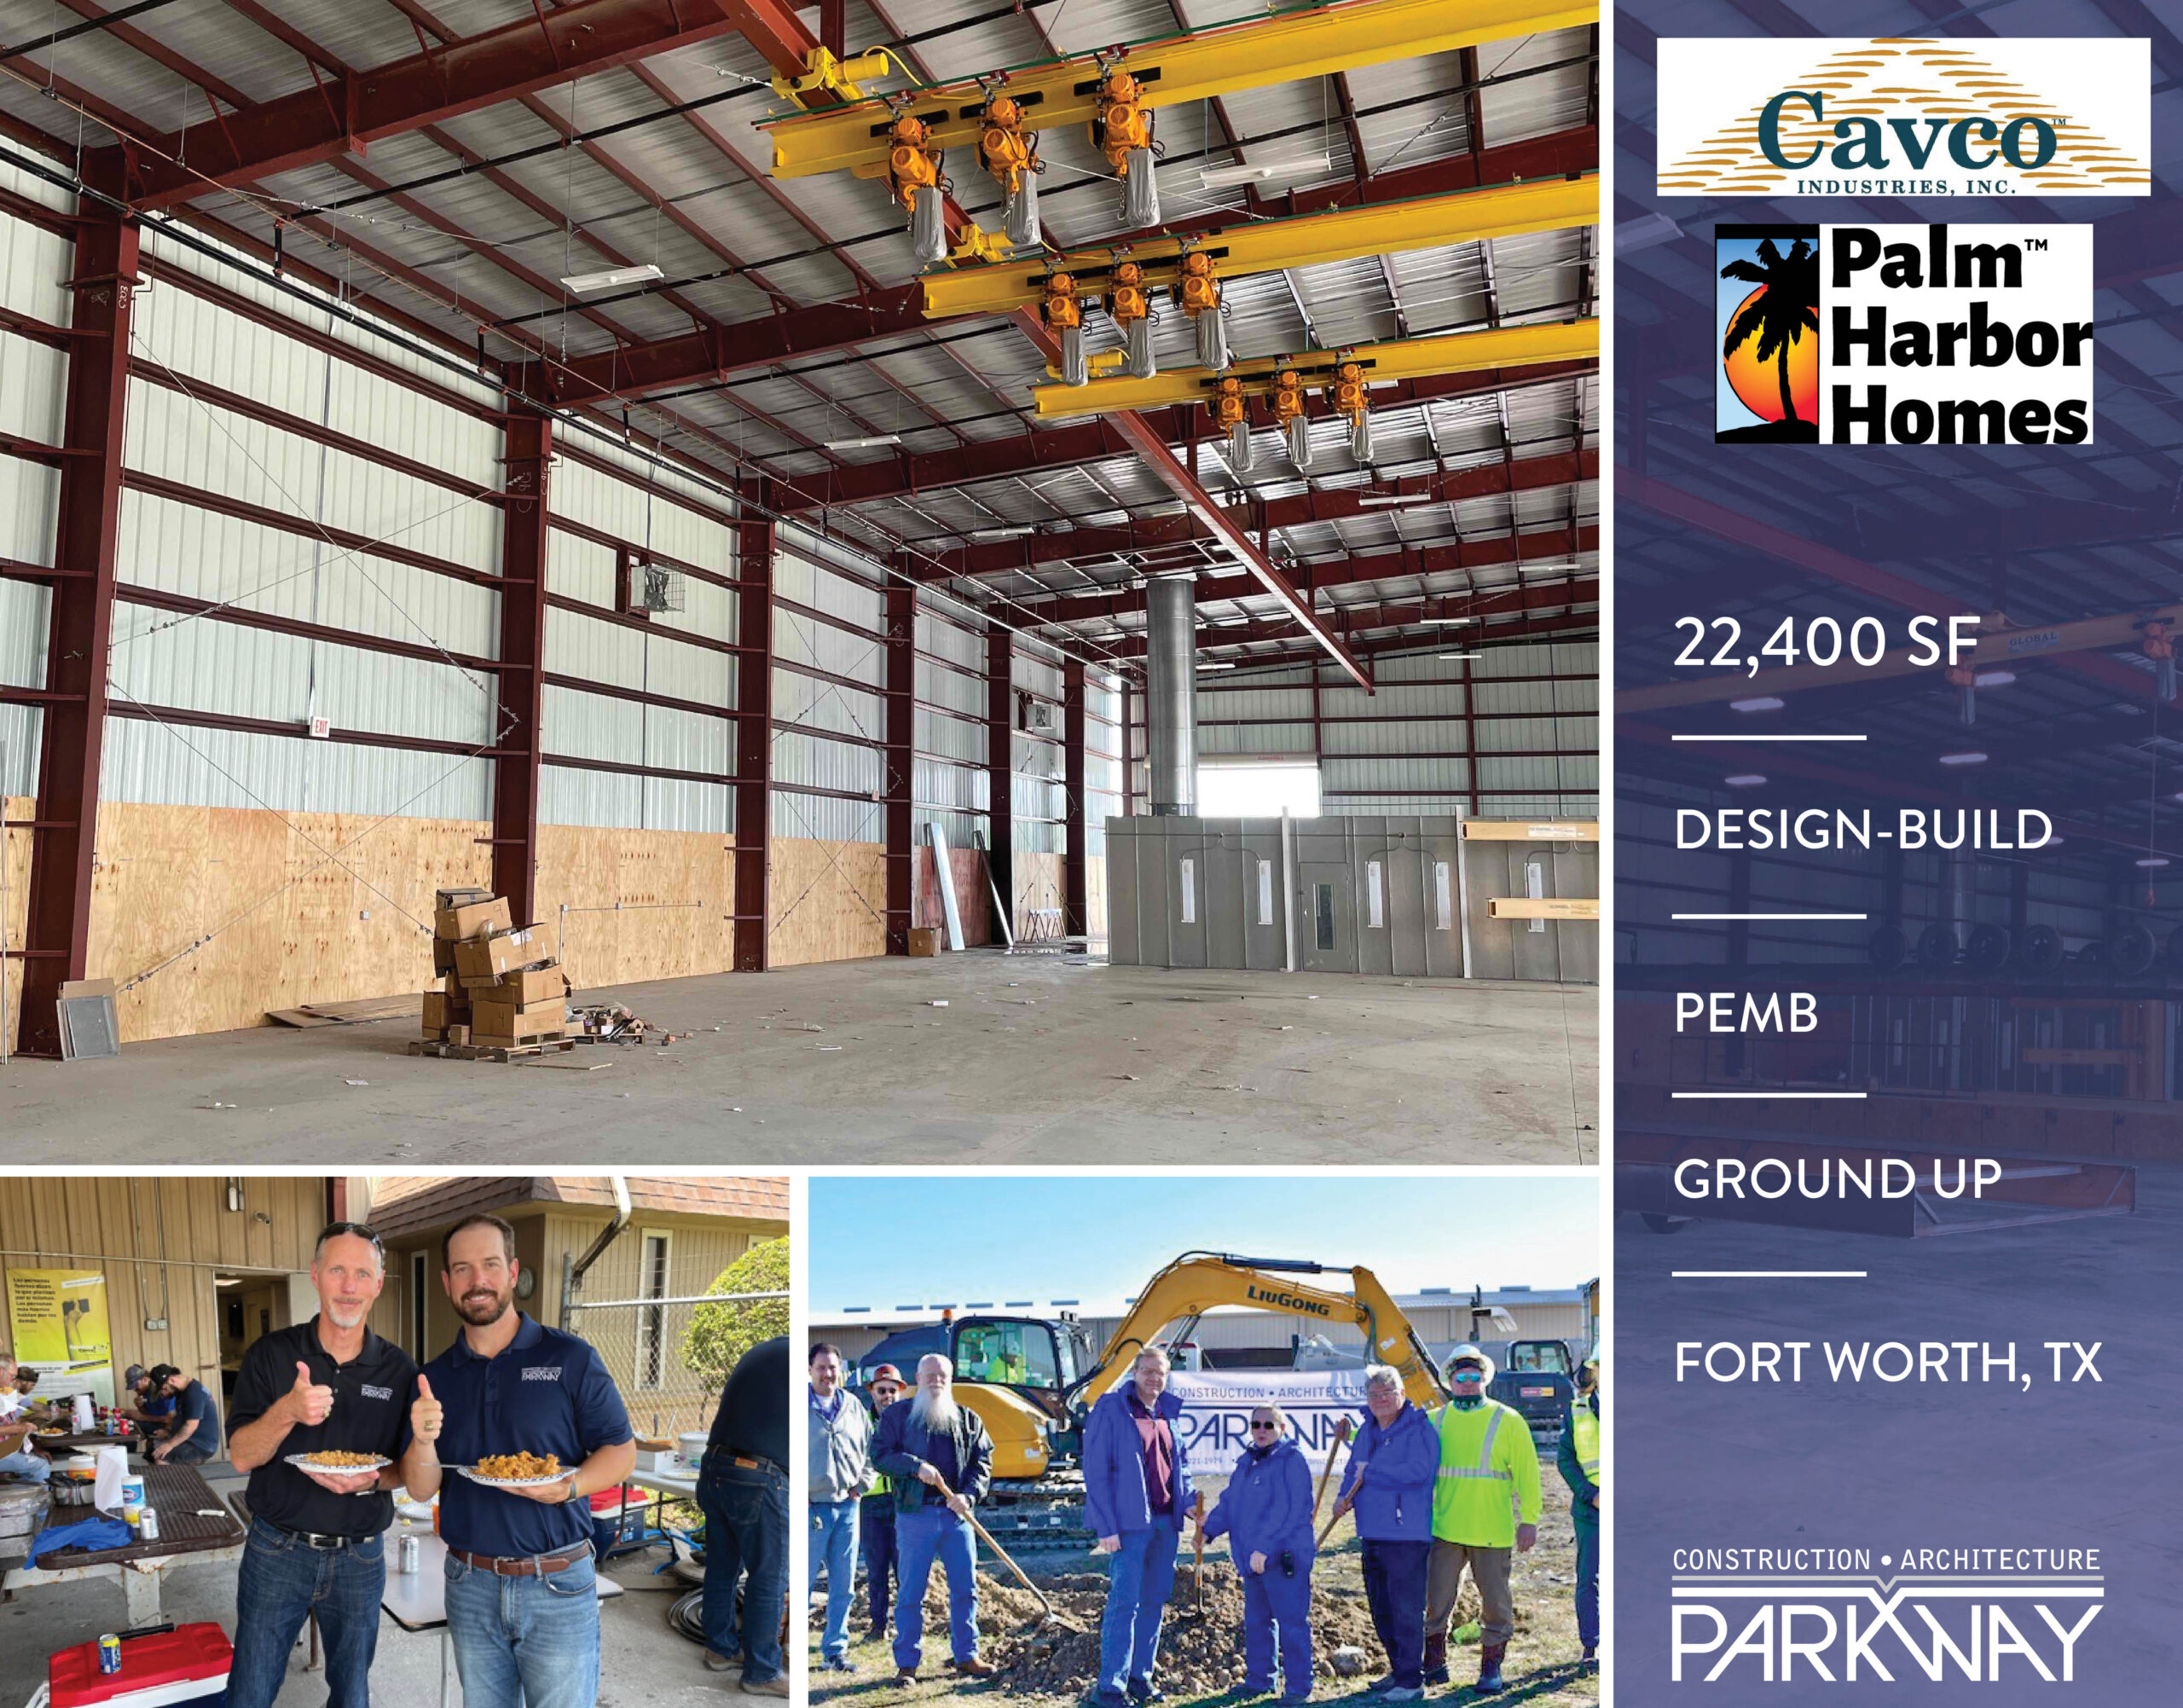 Palm Harbor Homes, Cavco Plant Expansion